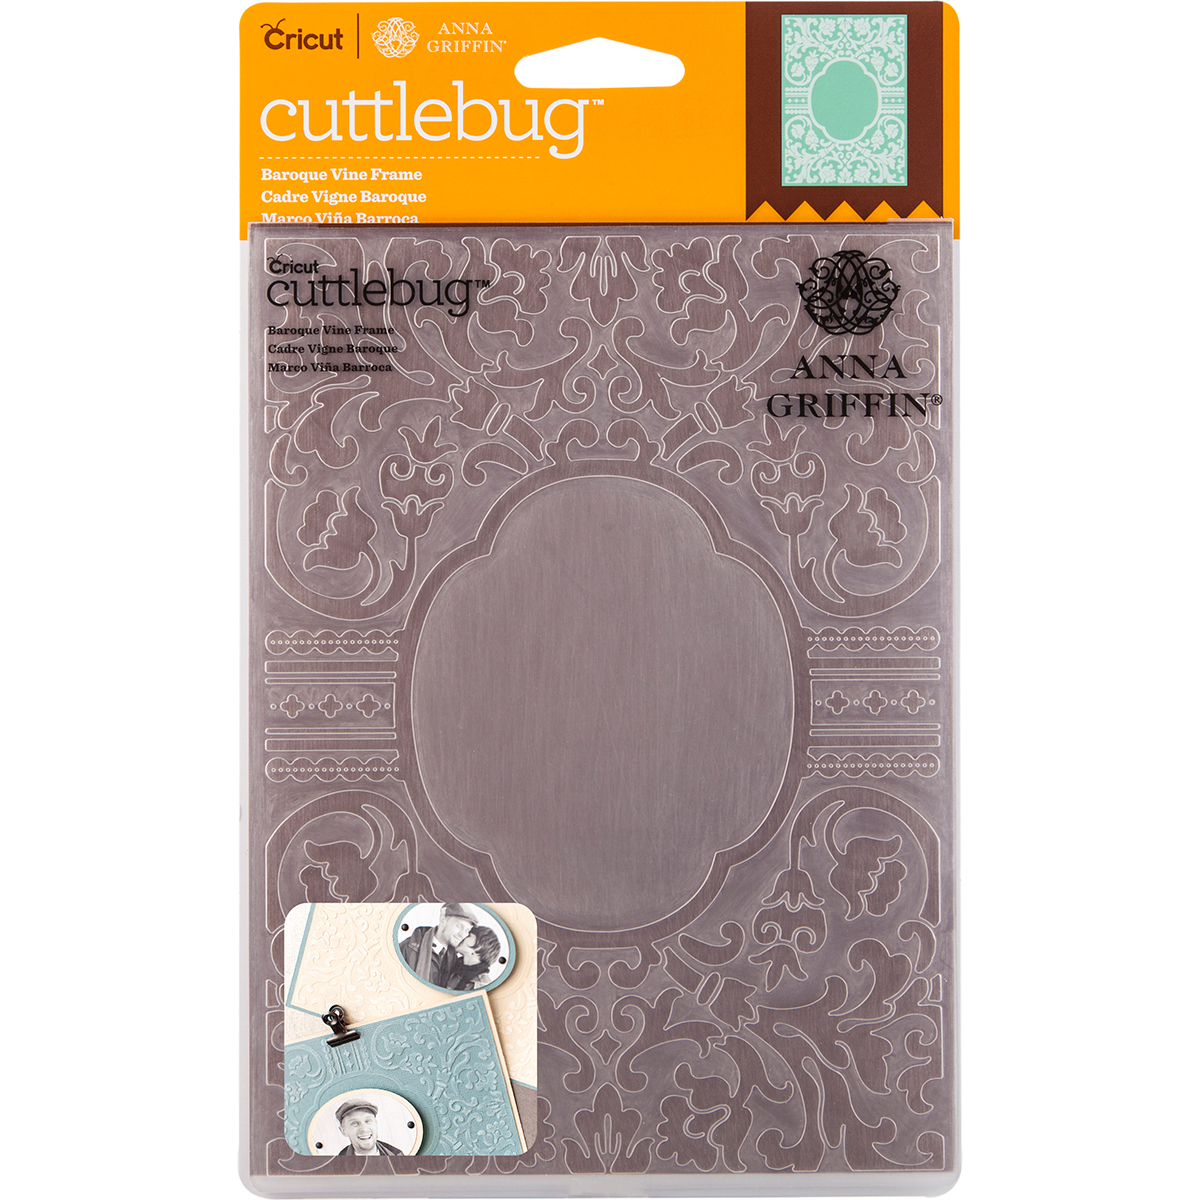 "Cuttlebug 5"" x 7"" Embossing Folder By Anna Griffin, Baroque Vine Frame"